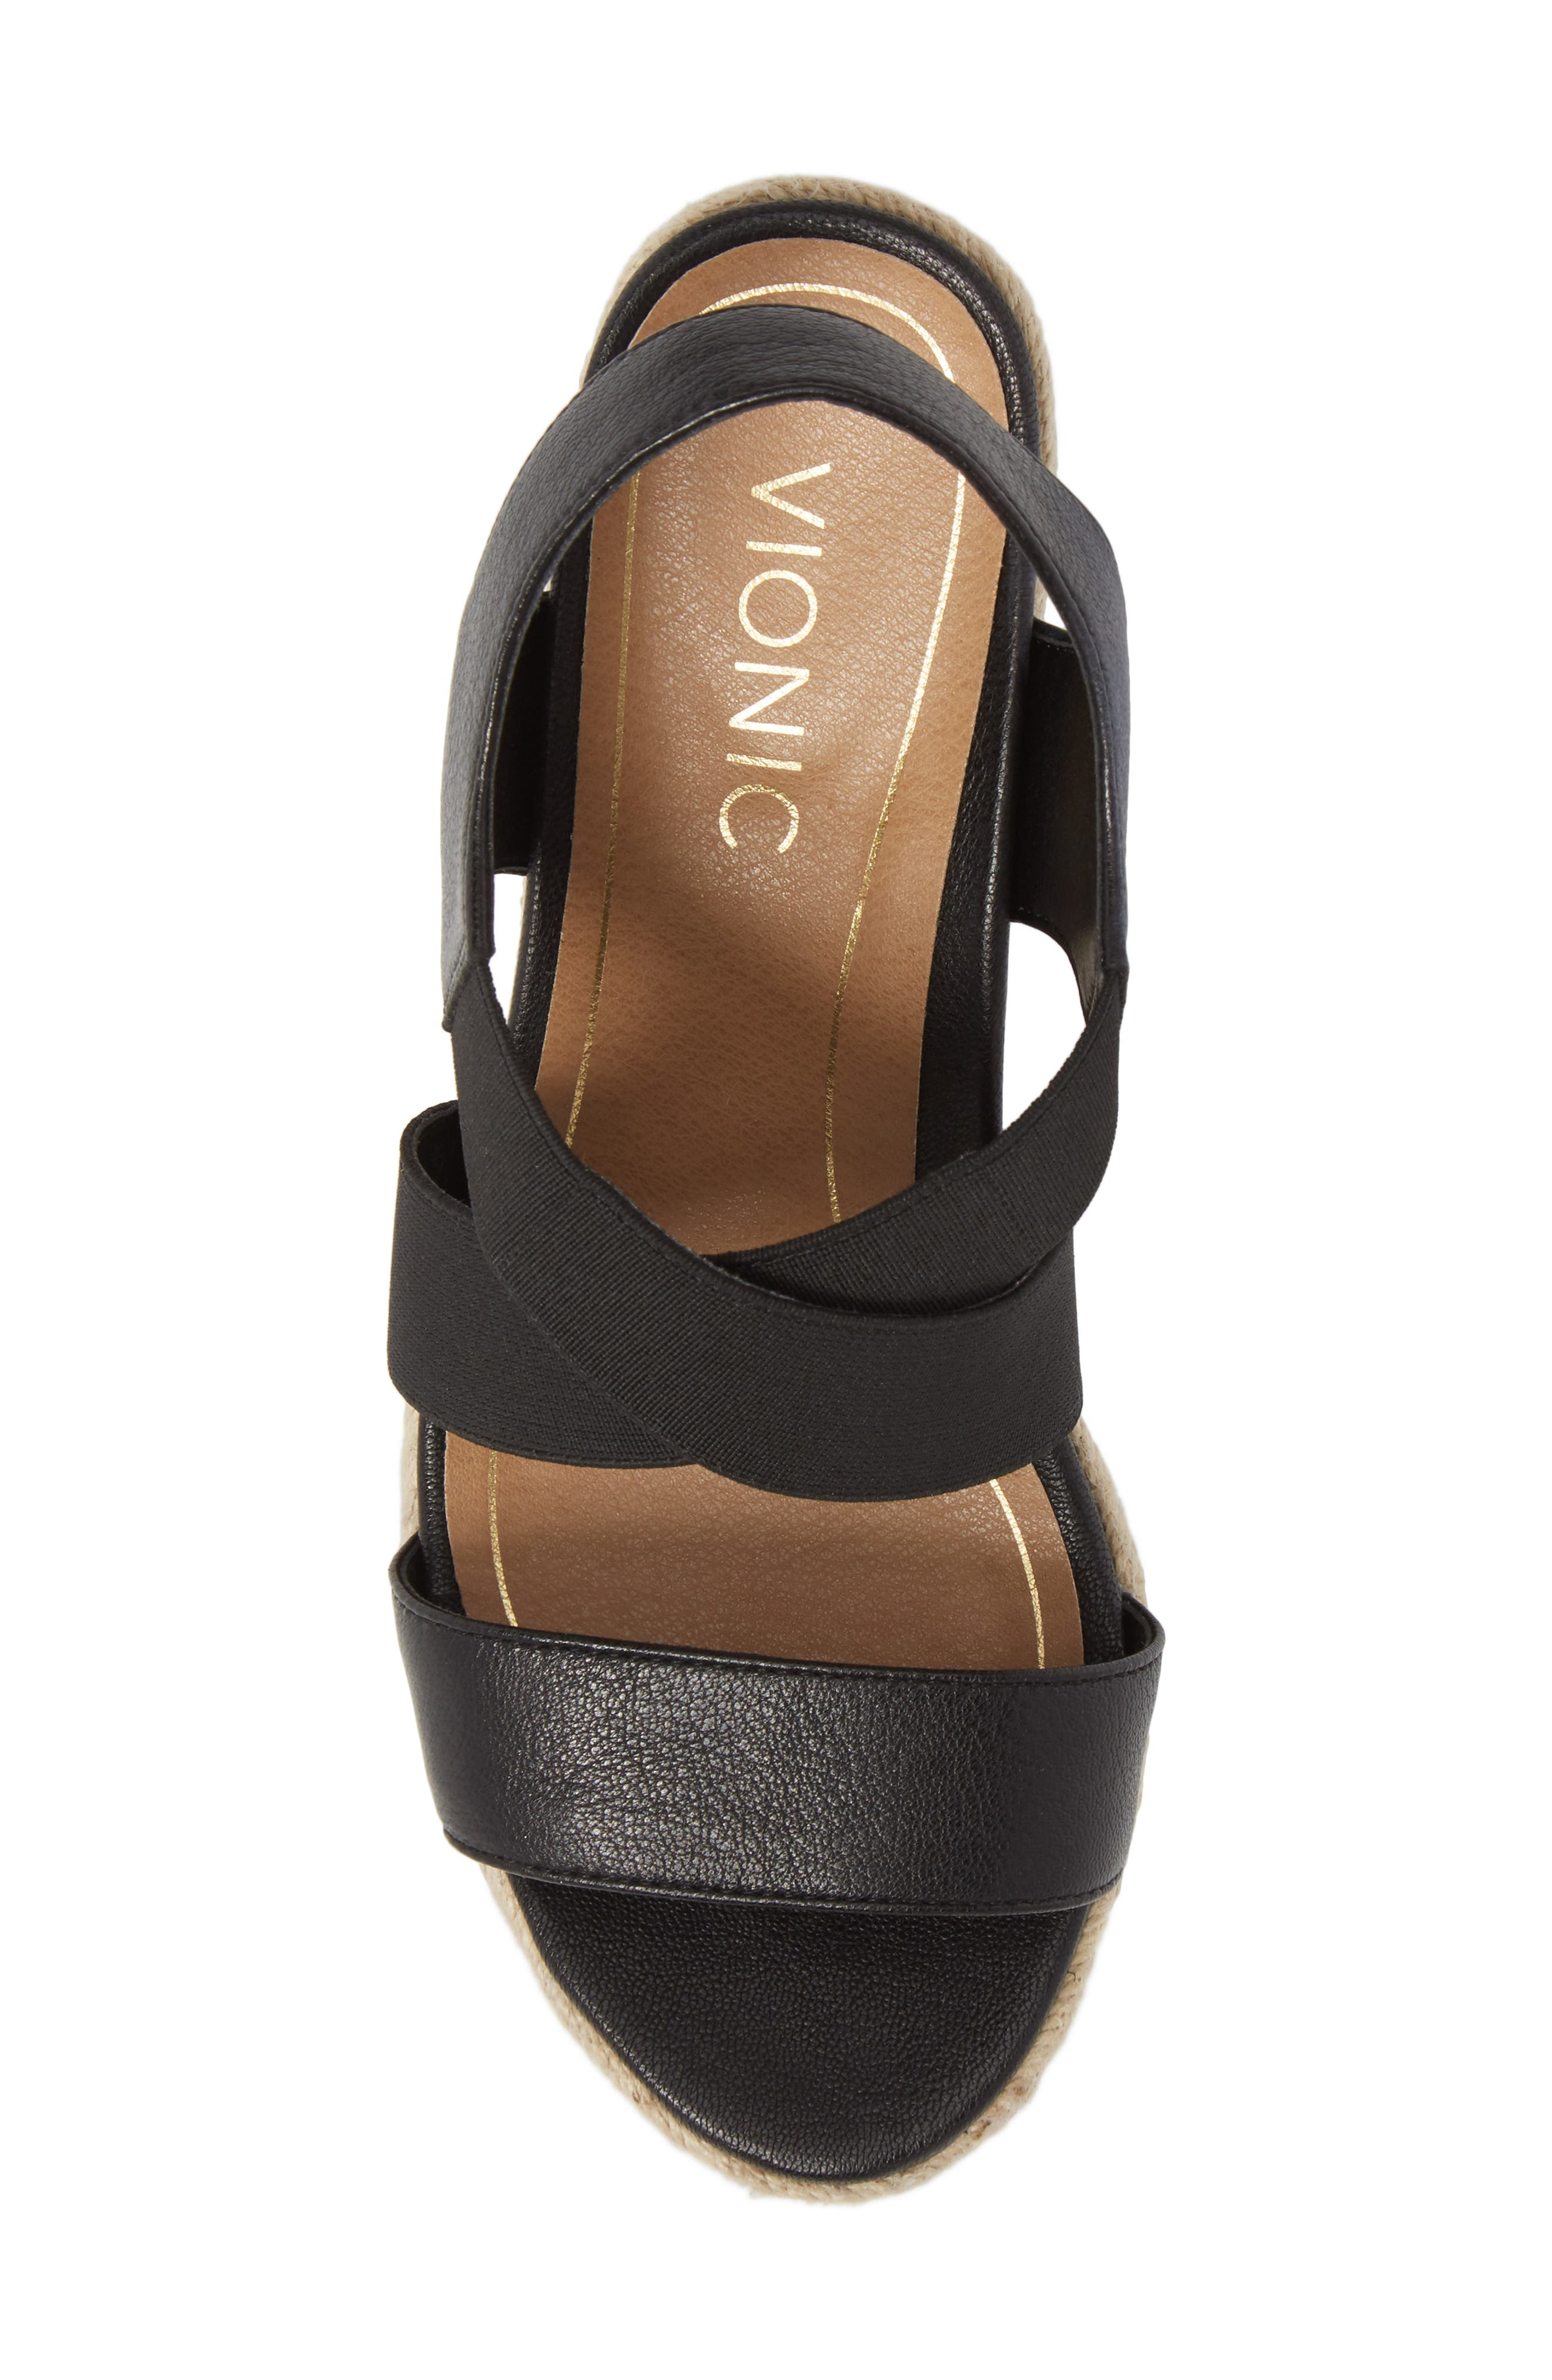 Ainsleigh Wedge Sandal,                             Alternate thumbnail 5, color,                             BLACK LEATHER